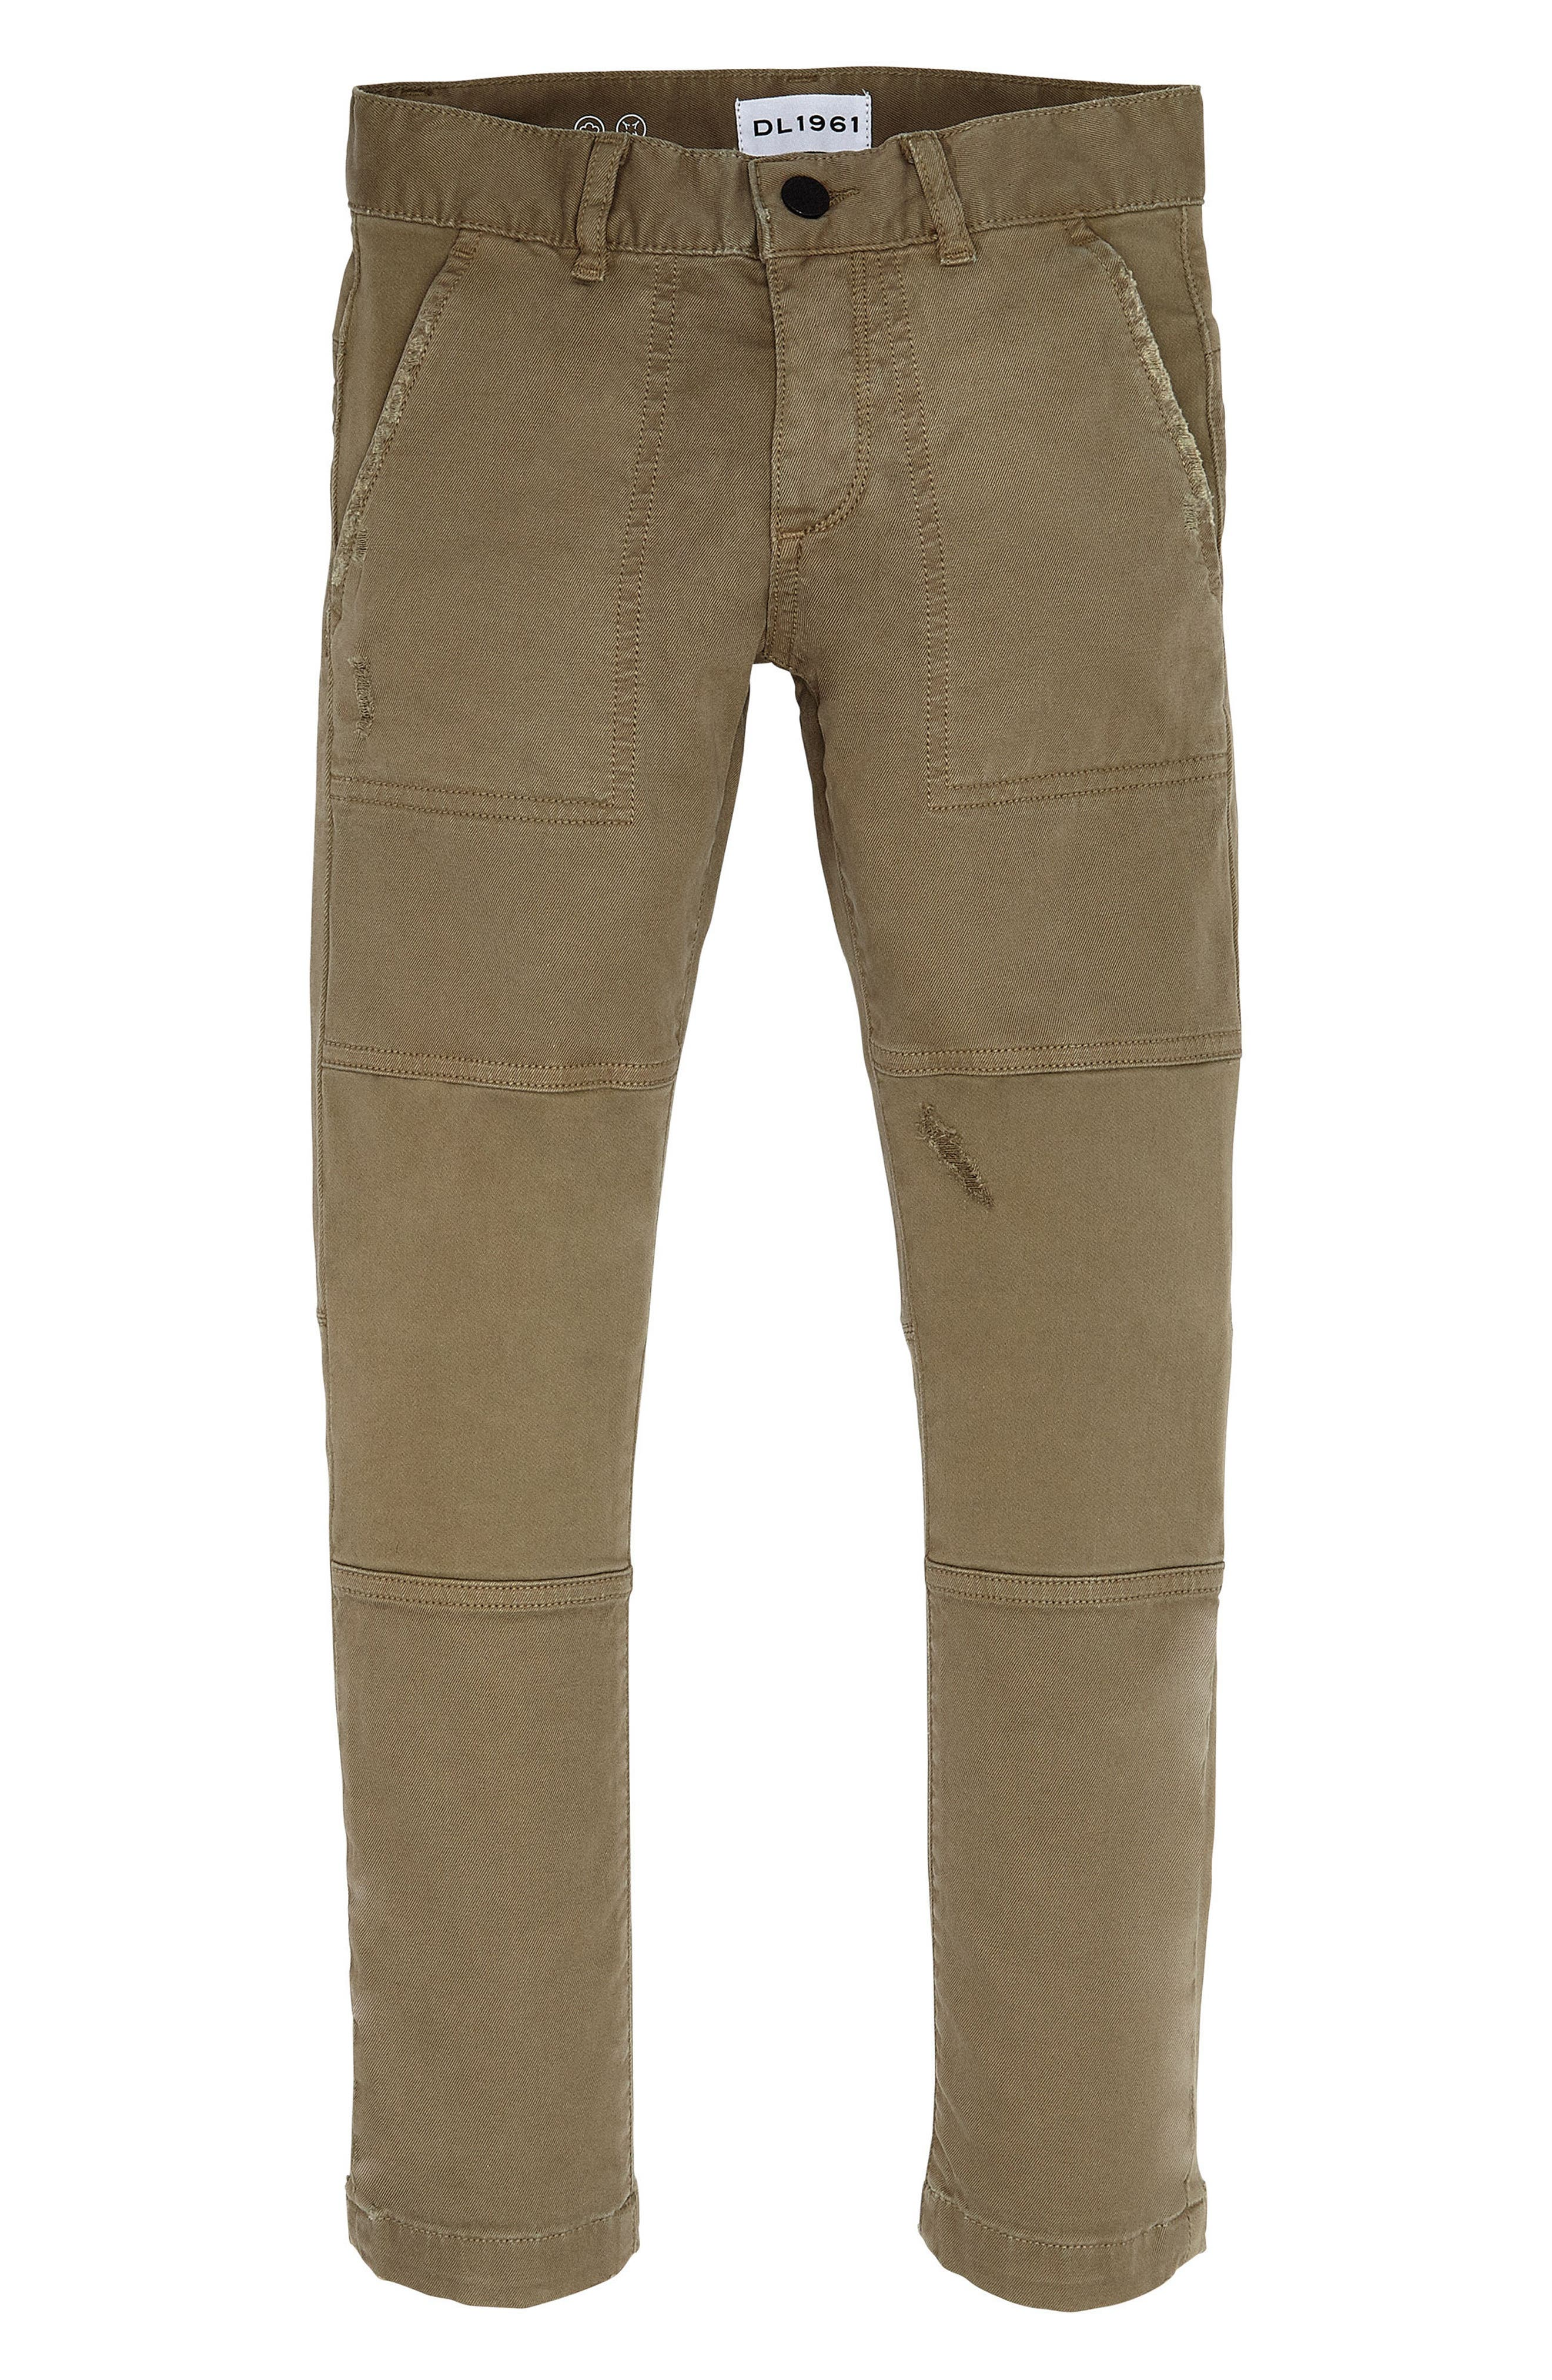 DL1961 Hawke Skinny Fit Utility Jeans (Toddler Boys & Little Boys)